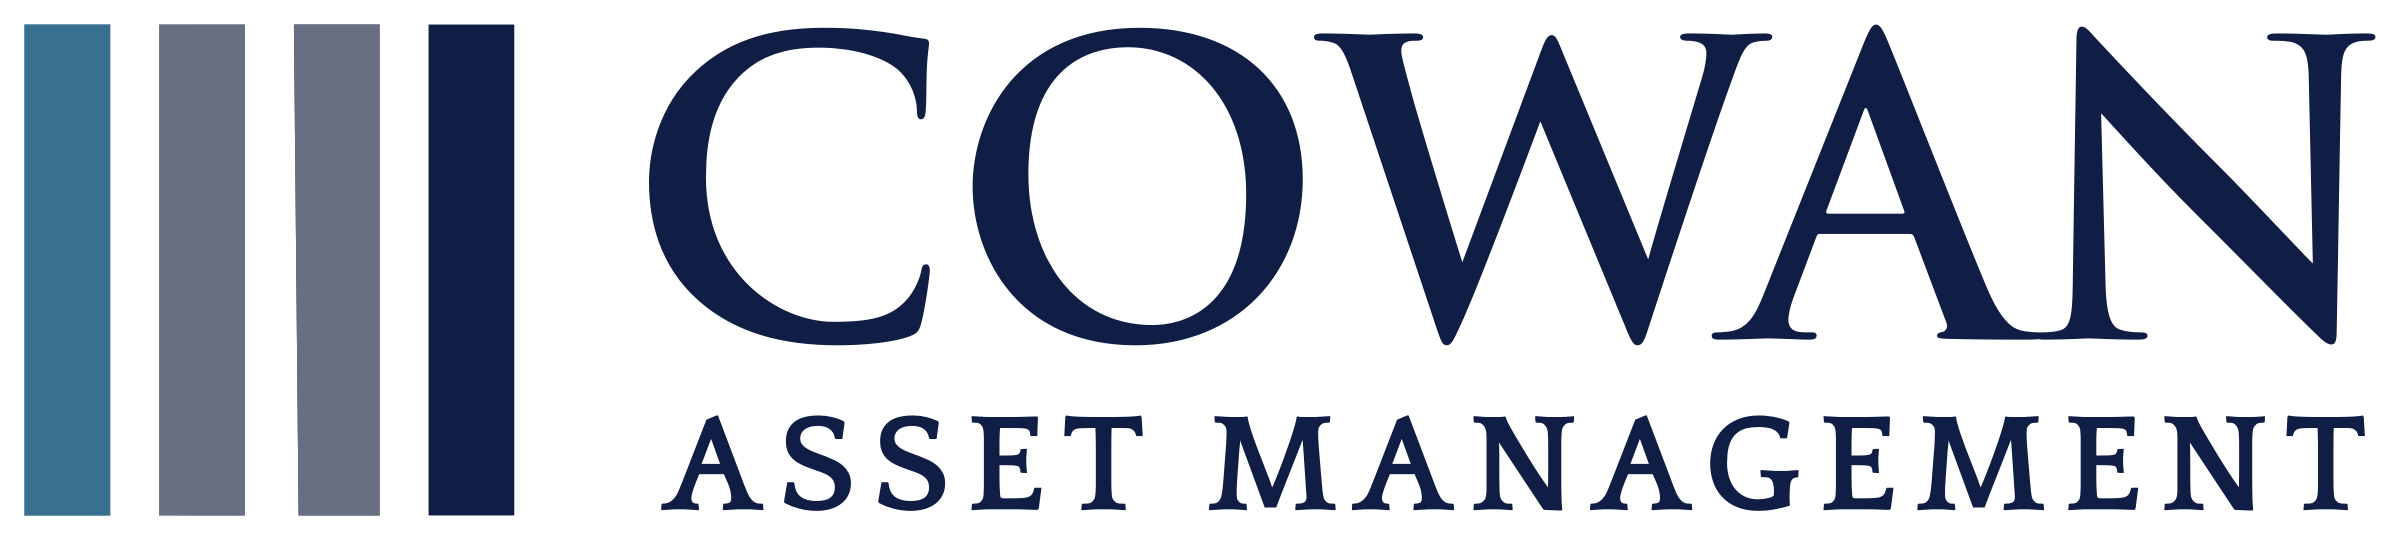 Cowan Asset Management Logo